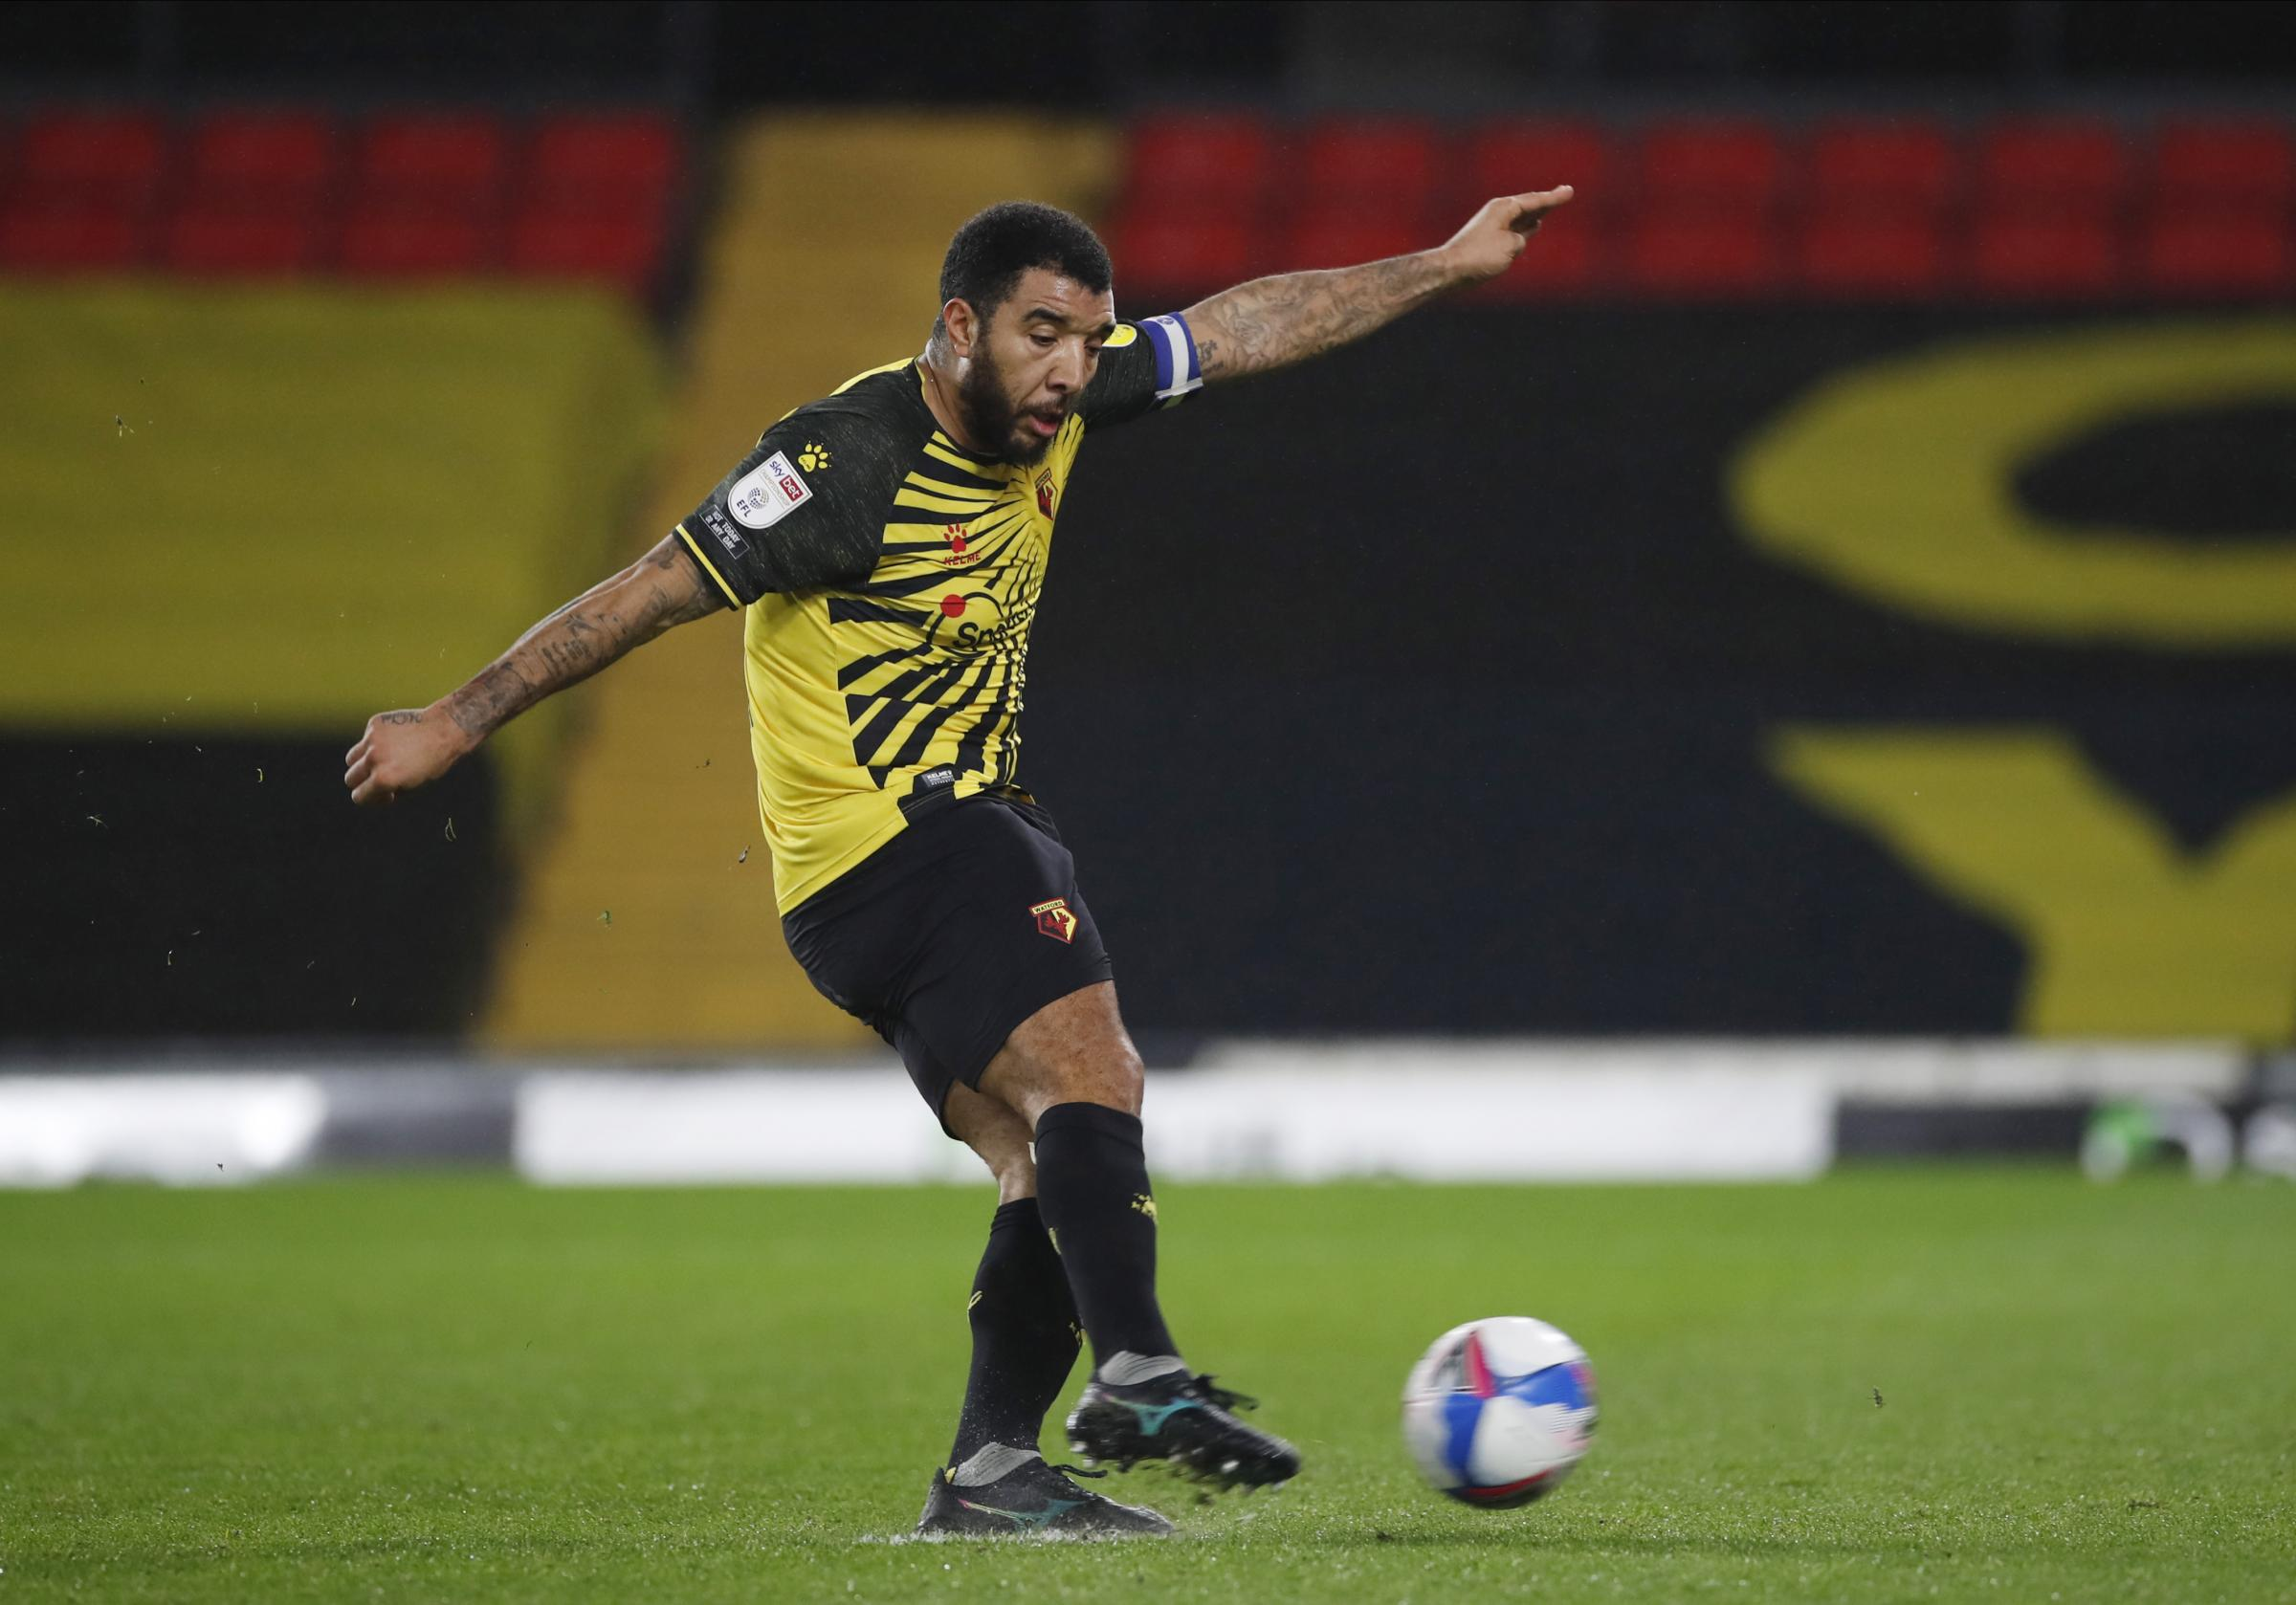 Watford beat Barnsley to go third in the Championship